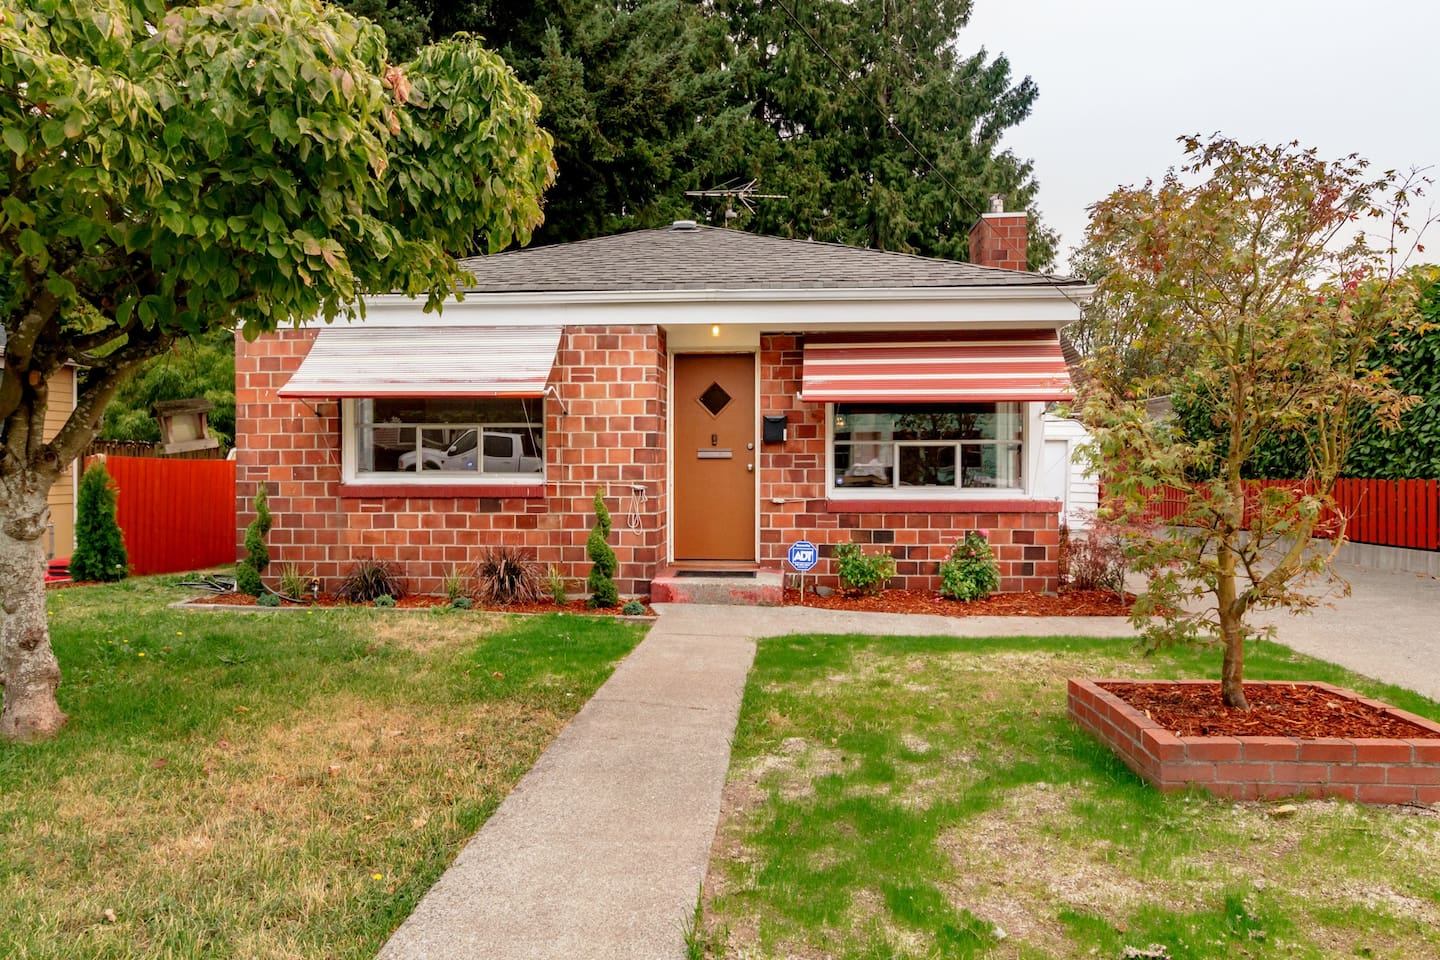 1 Story Brick Rambler with detached garage and 3 car off street parking.